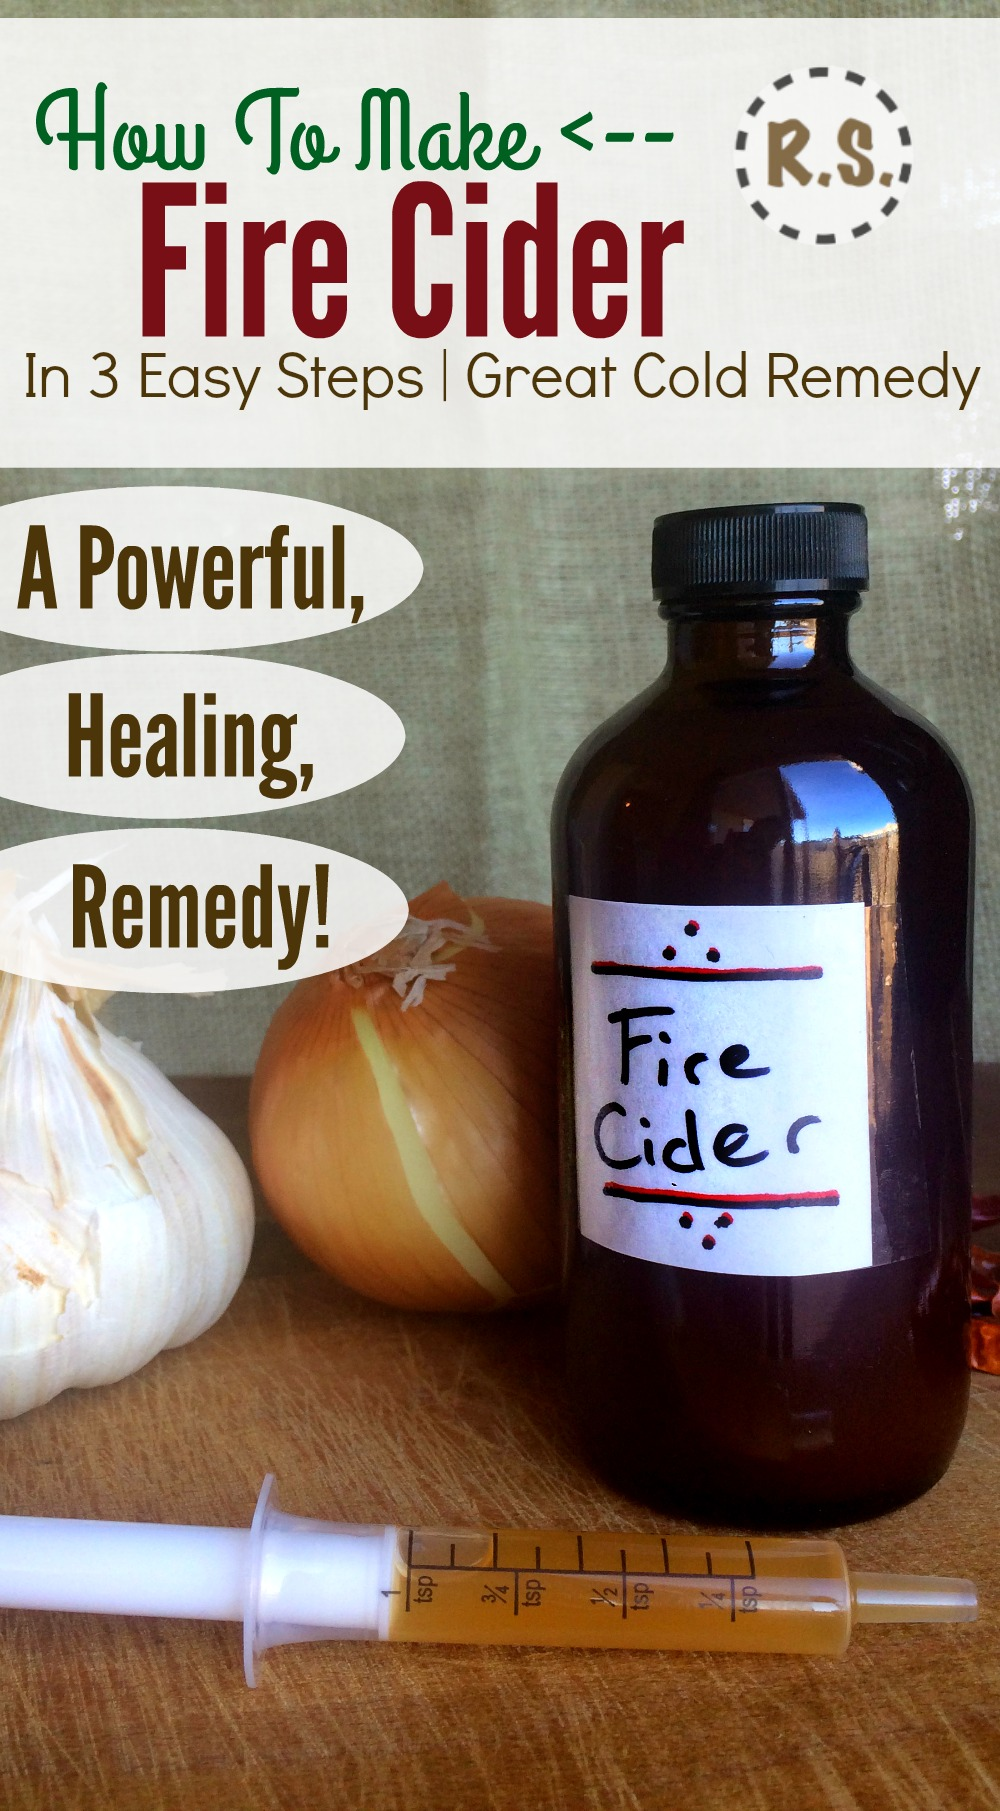 Make a powerful colds and flu remedy with this easy fire cider recipe. Take fire cider at the beginning of symptoms and stop a cold before it starts! An instant fire cider option is included too.